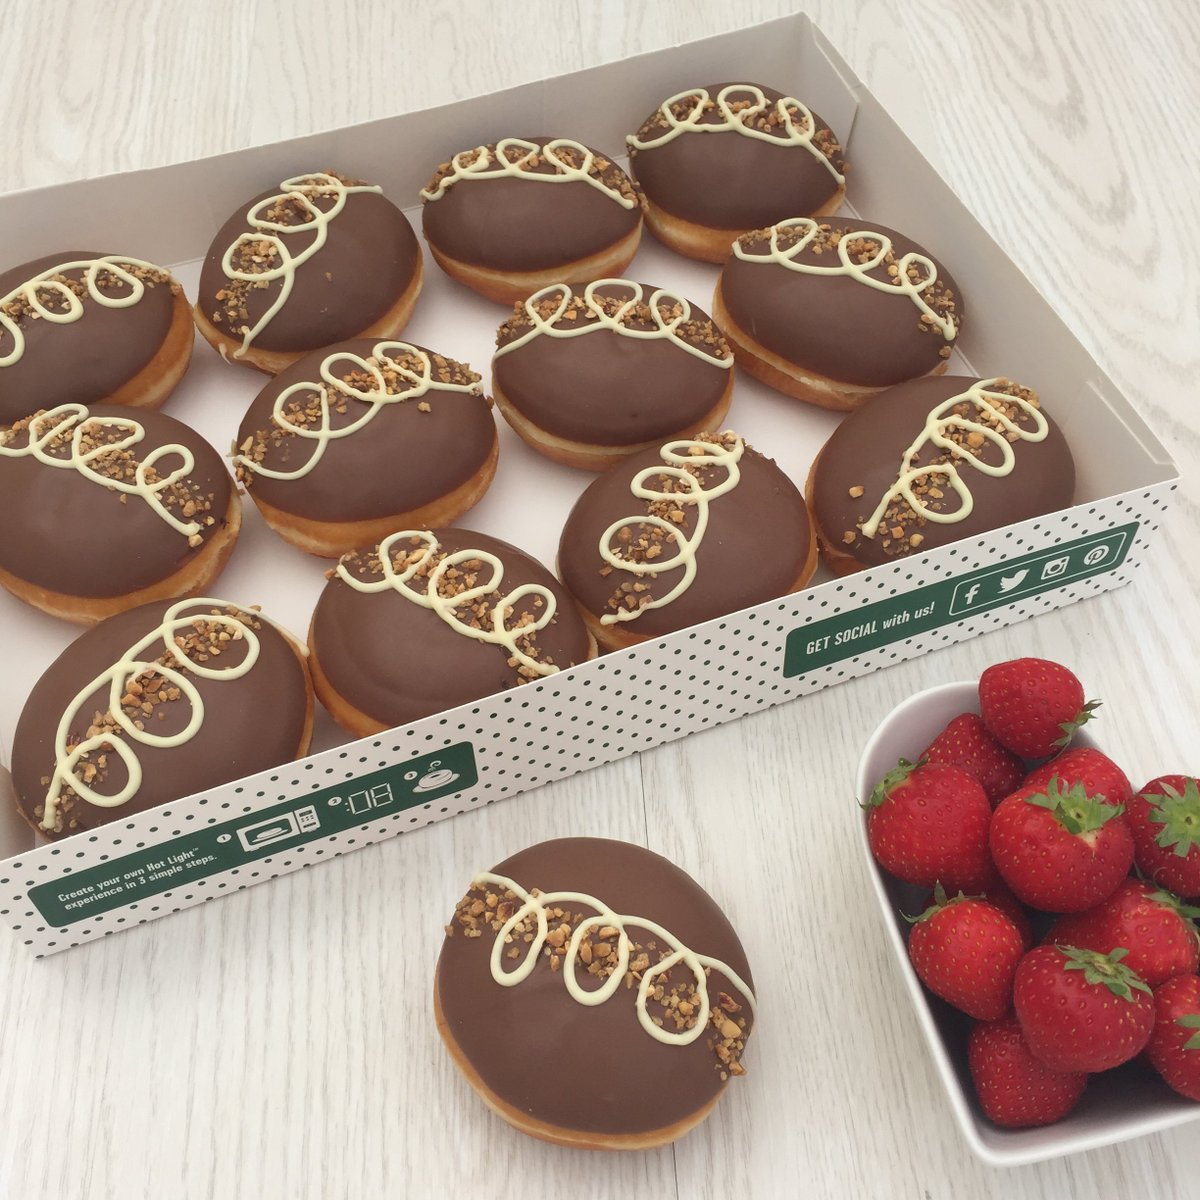 Considerable Krispy Kreme Uk On Night Find Your Nearest Supply Ofdelicious Doughnuts Using Our Store Krispy Kreme Uk On Night Find Your Nearest Nearest Krispy Kreme Doughnut Shop Nearest Krispy Kreme nice food Nearest Krispy Kreme